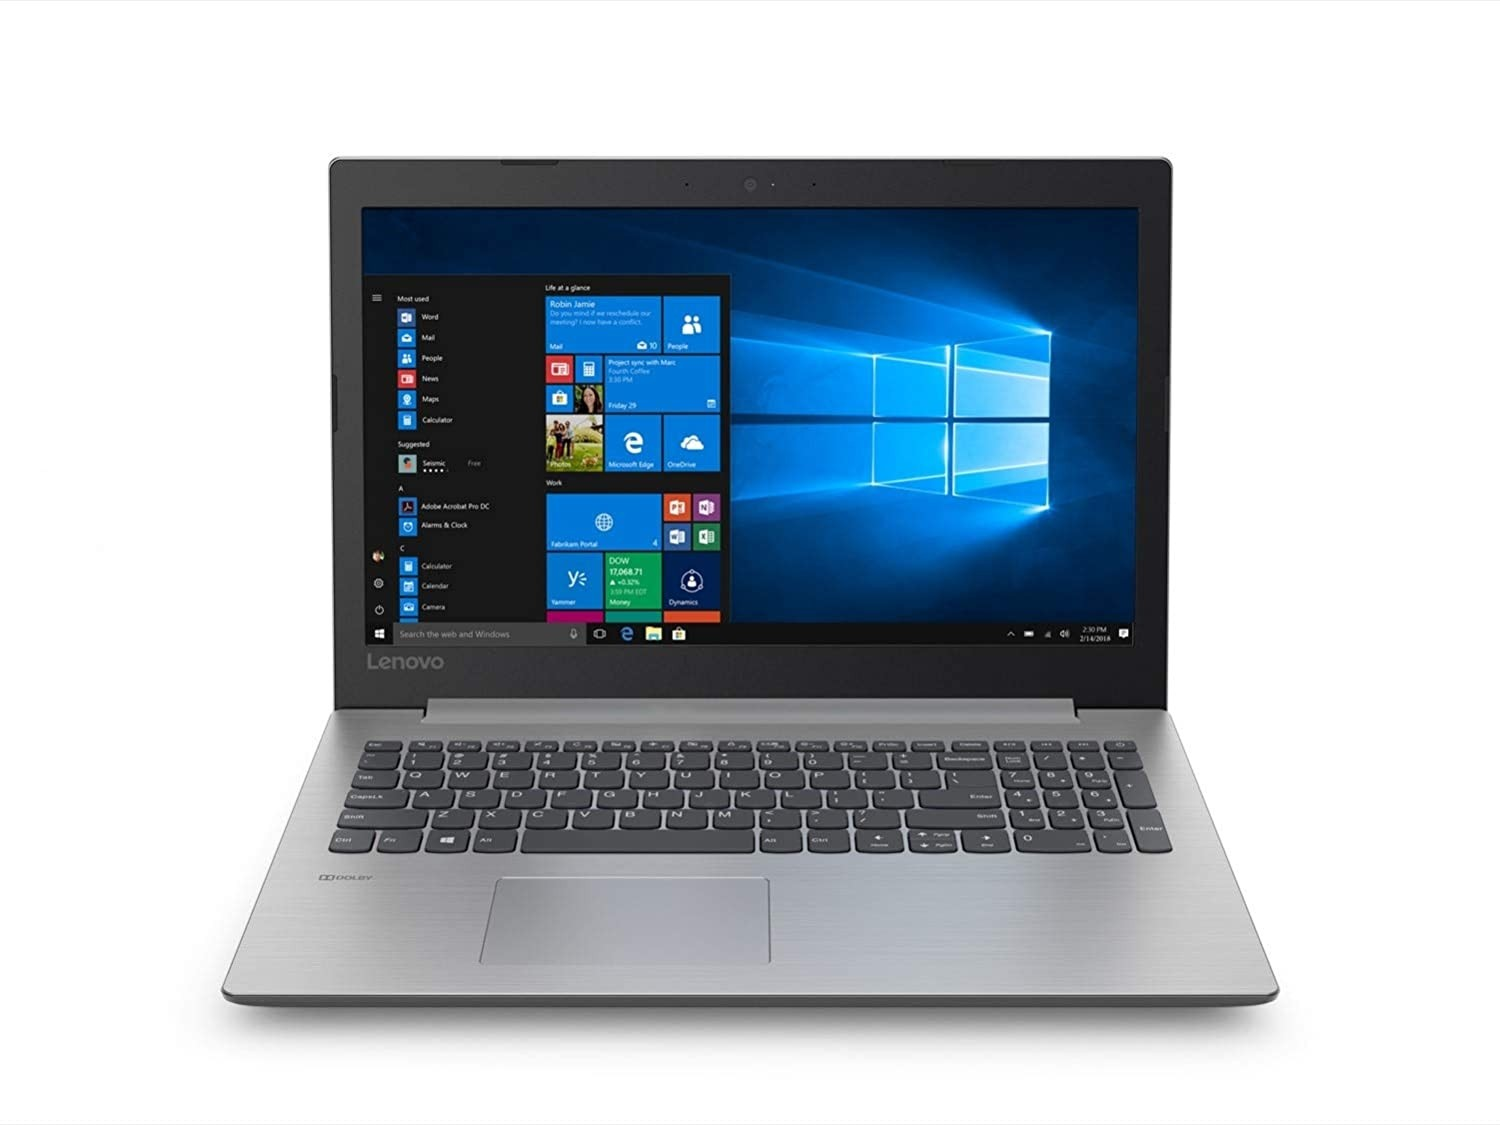 Refurbished laptops & desktops - LENOVO IDEAPAD 330 INTEL CORE I5 8TH GEN 15.6-INCH FULL HD LAPTOP (4GB+16GB OPTANE/1 TB HDD/WINDOWS 10 HOME/ PLATINUM GREY/2.2 KG), 81DE01REIN